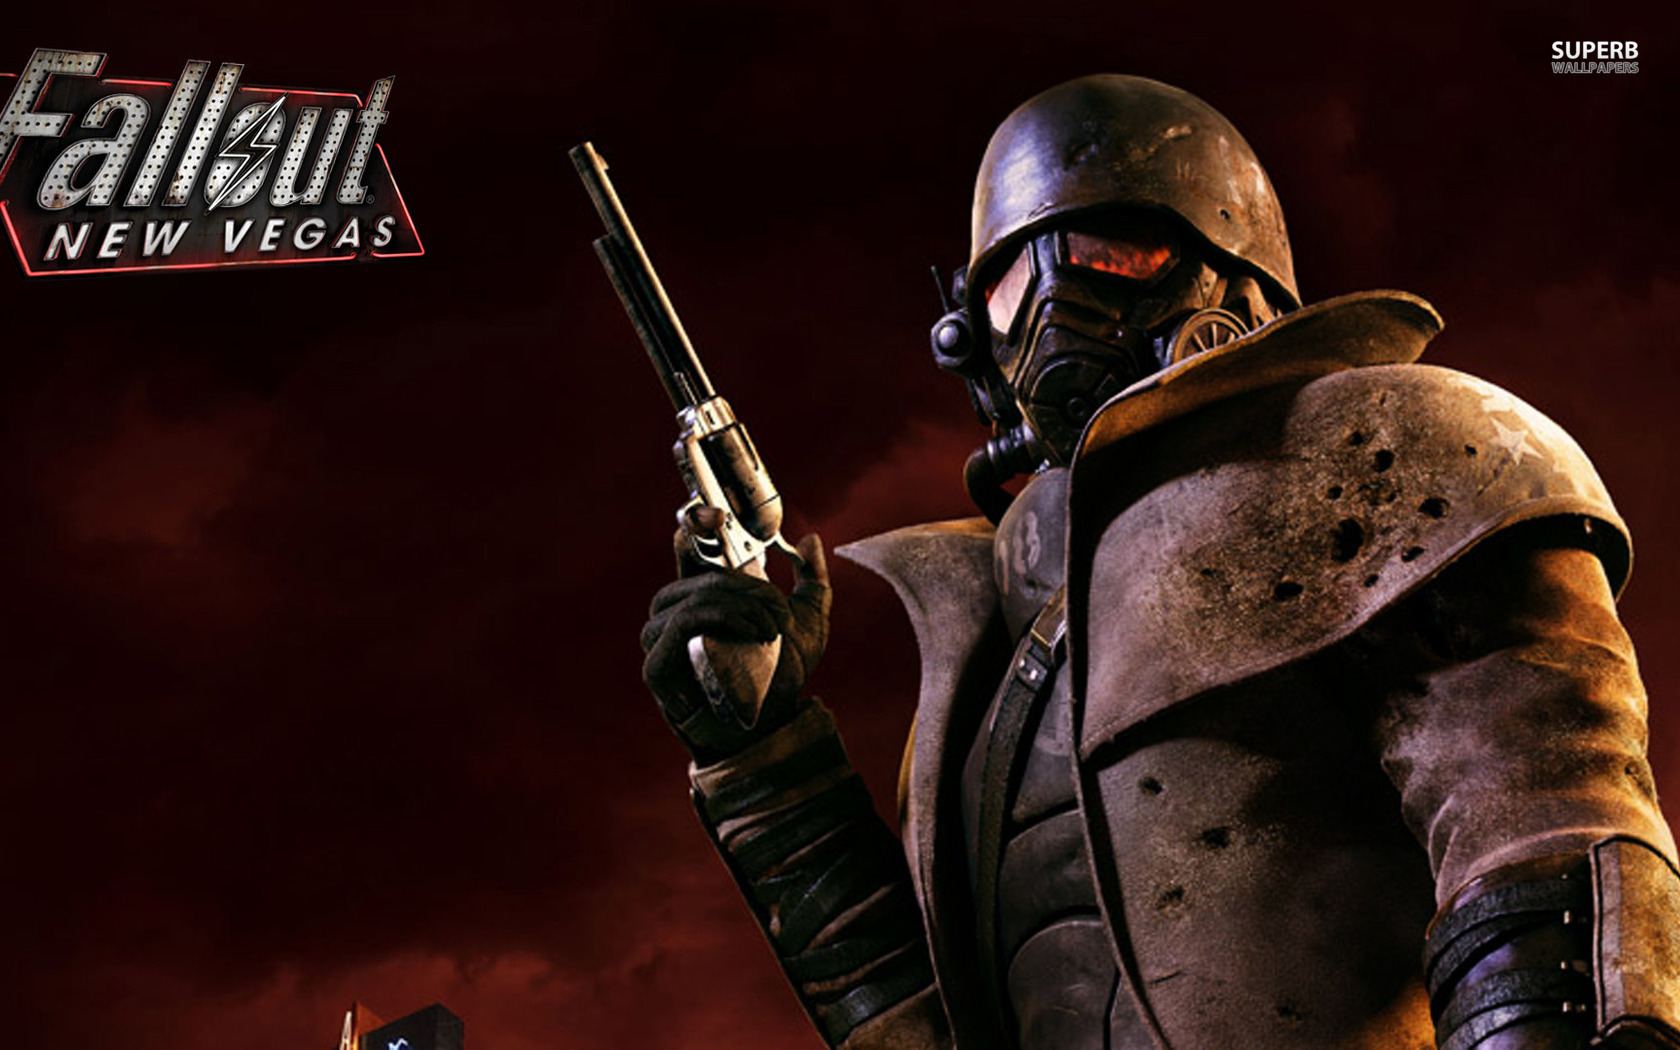 Fallout New Vegas Backgrounds Wallpaper